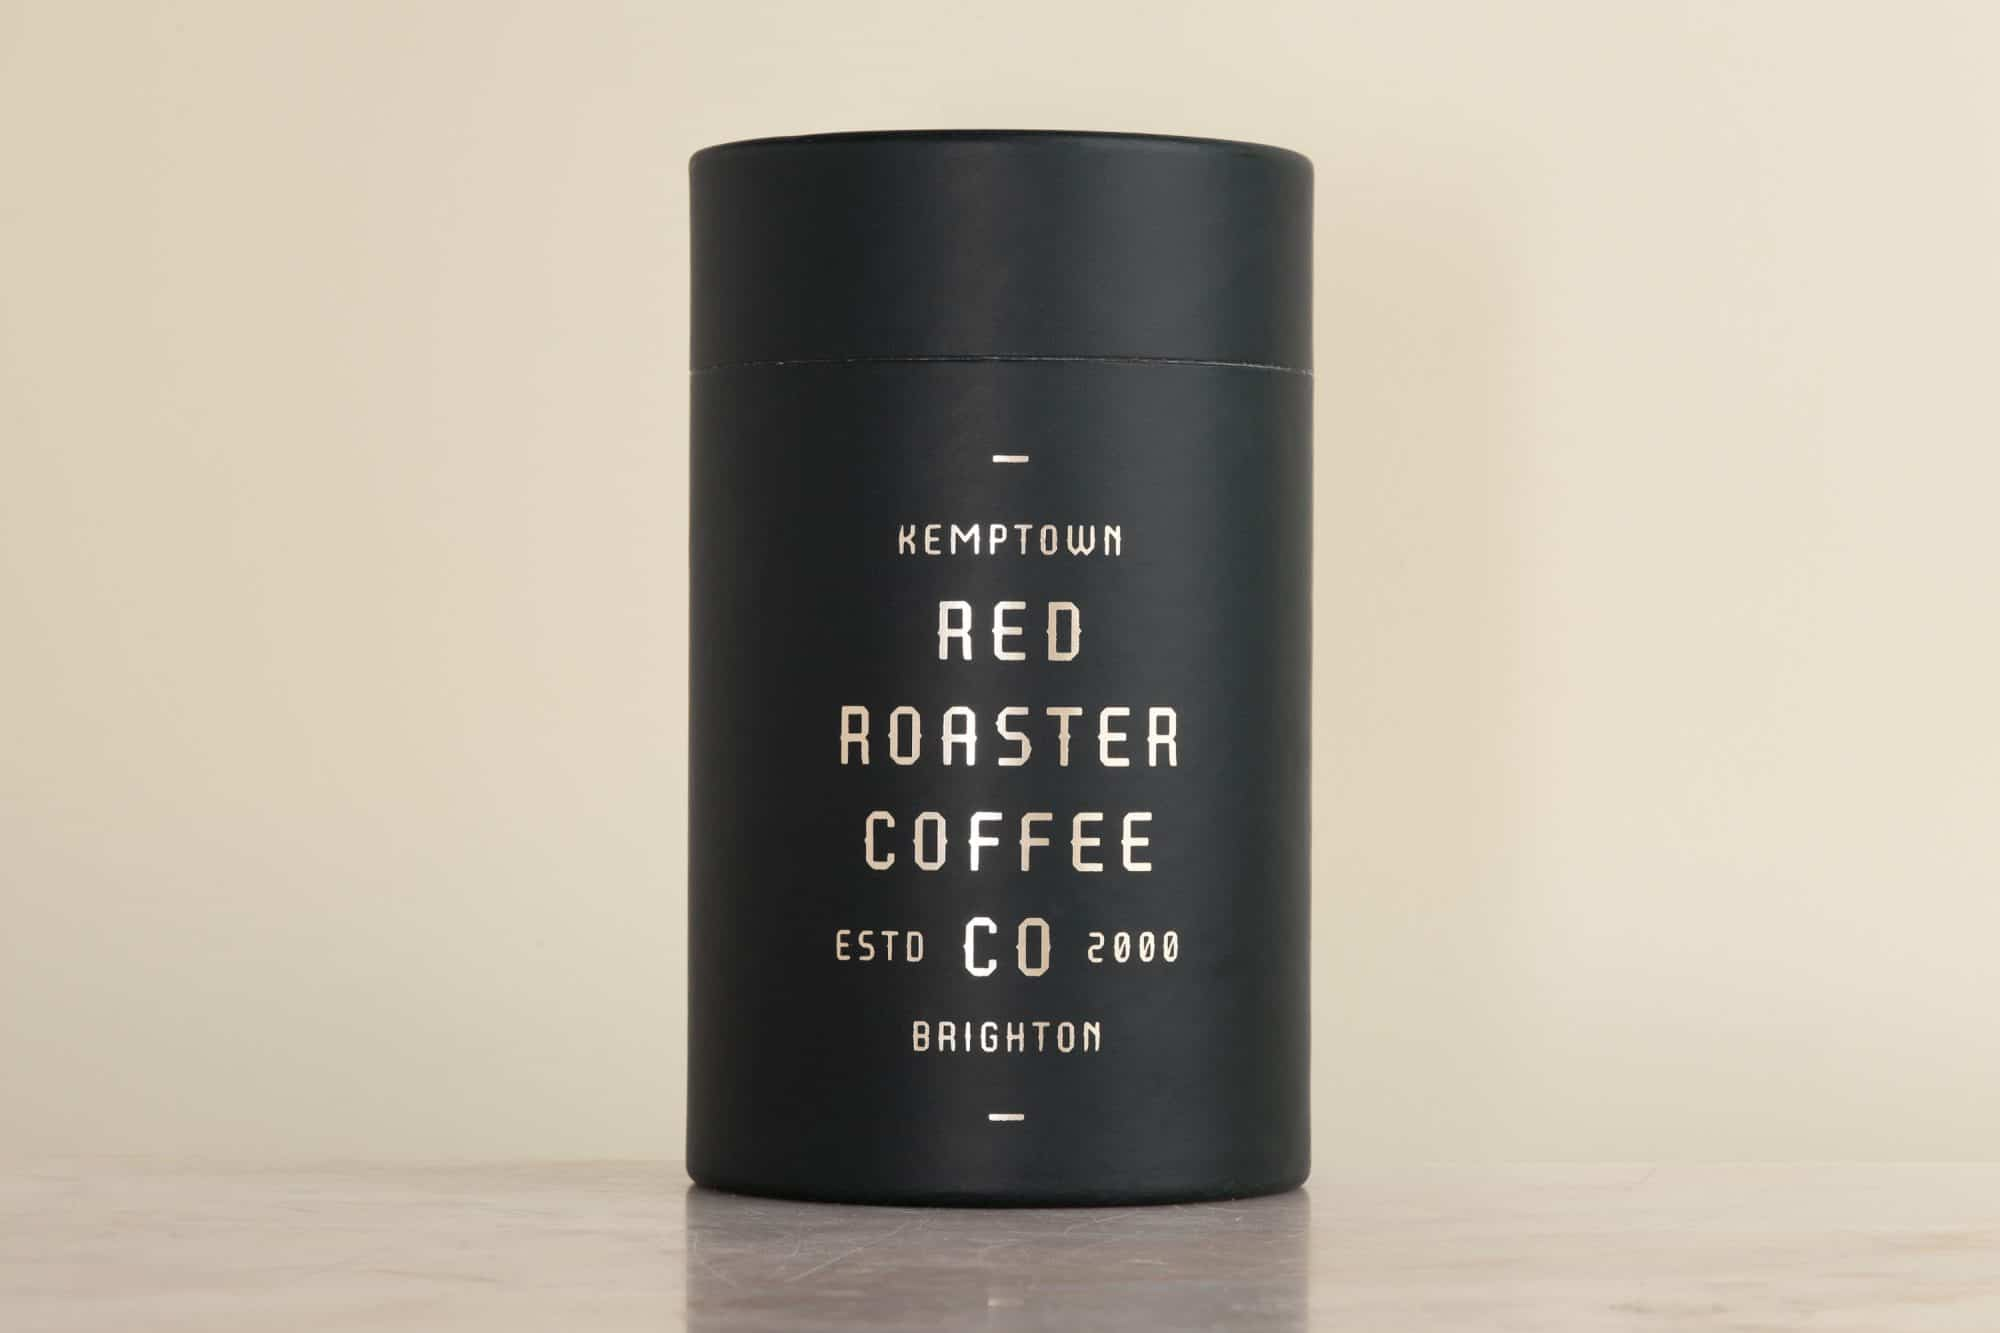 Red Roaster Coffee Co - Botanical Punk Coffee Beans Packaging, Kemptown, Brighton